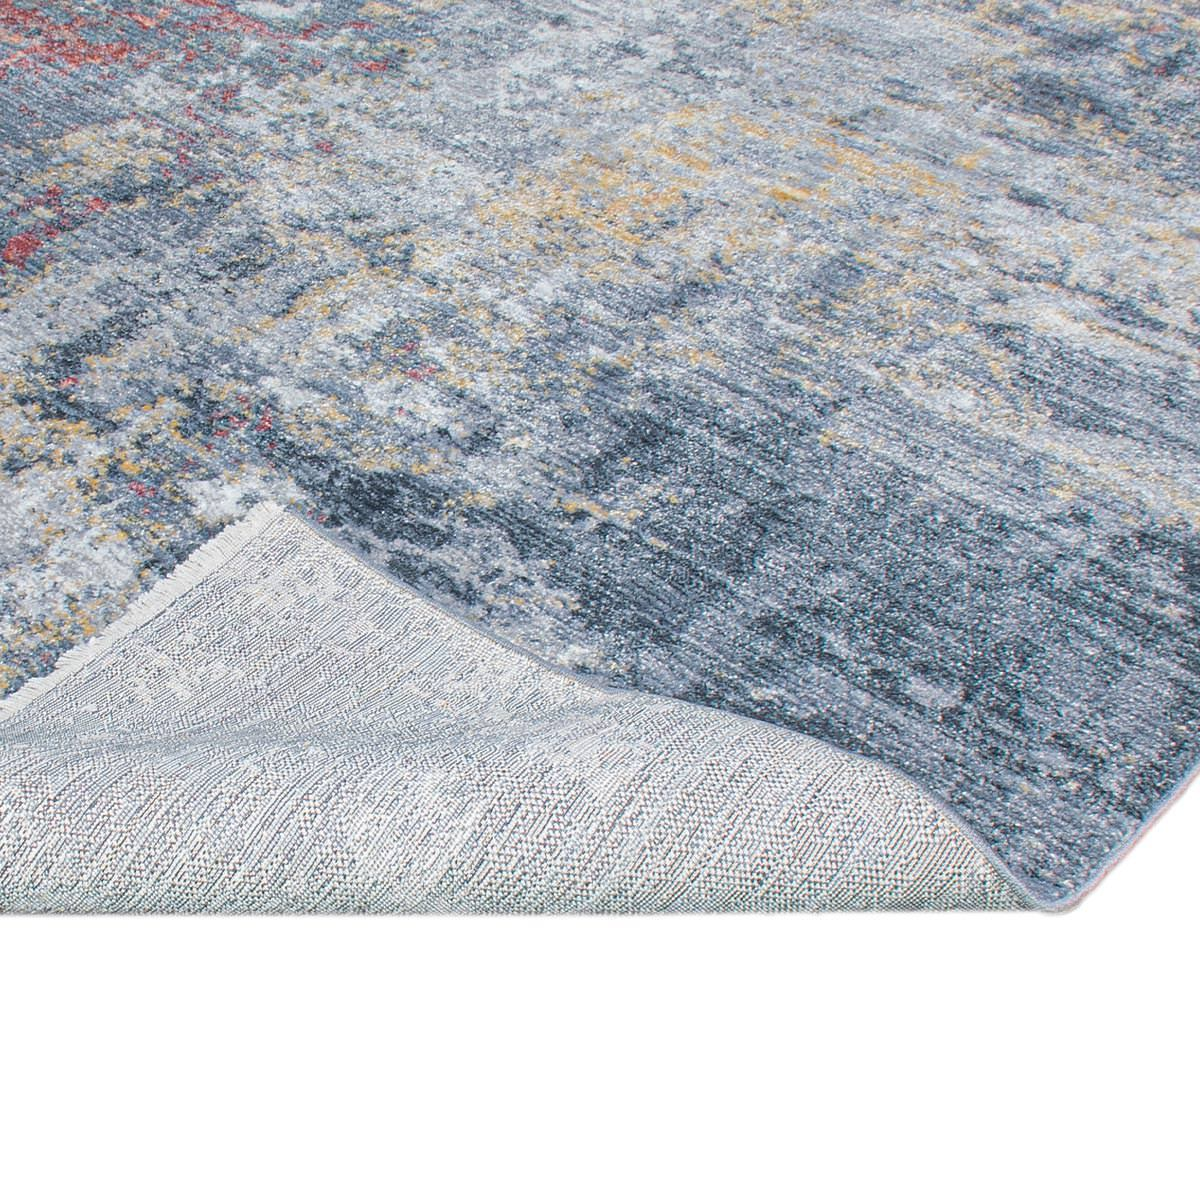 Istanbul Rug 02 Grey/Yellow/Orange 4